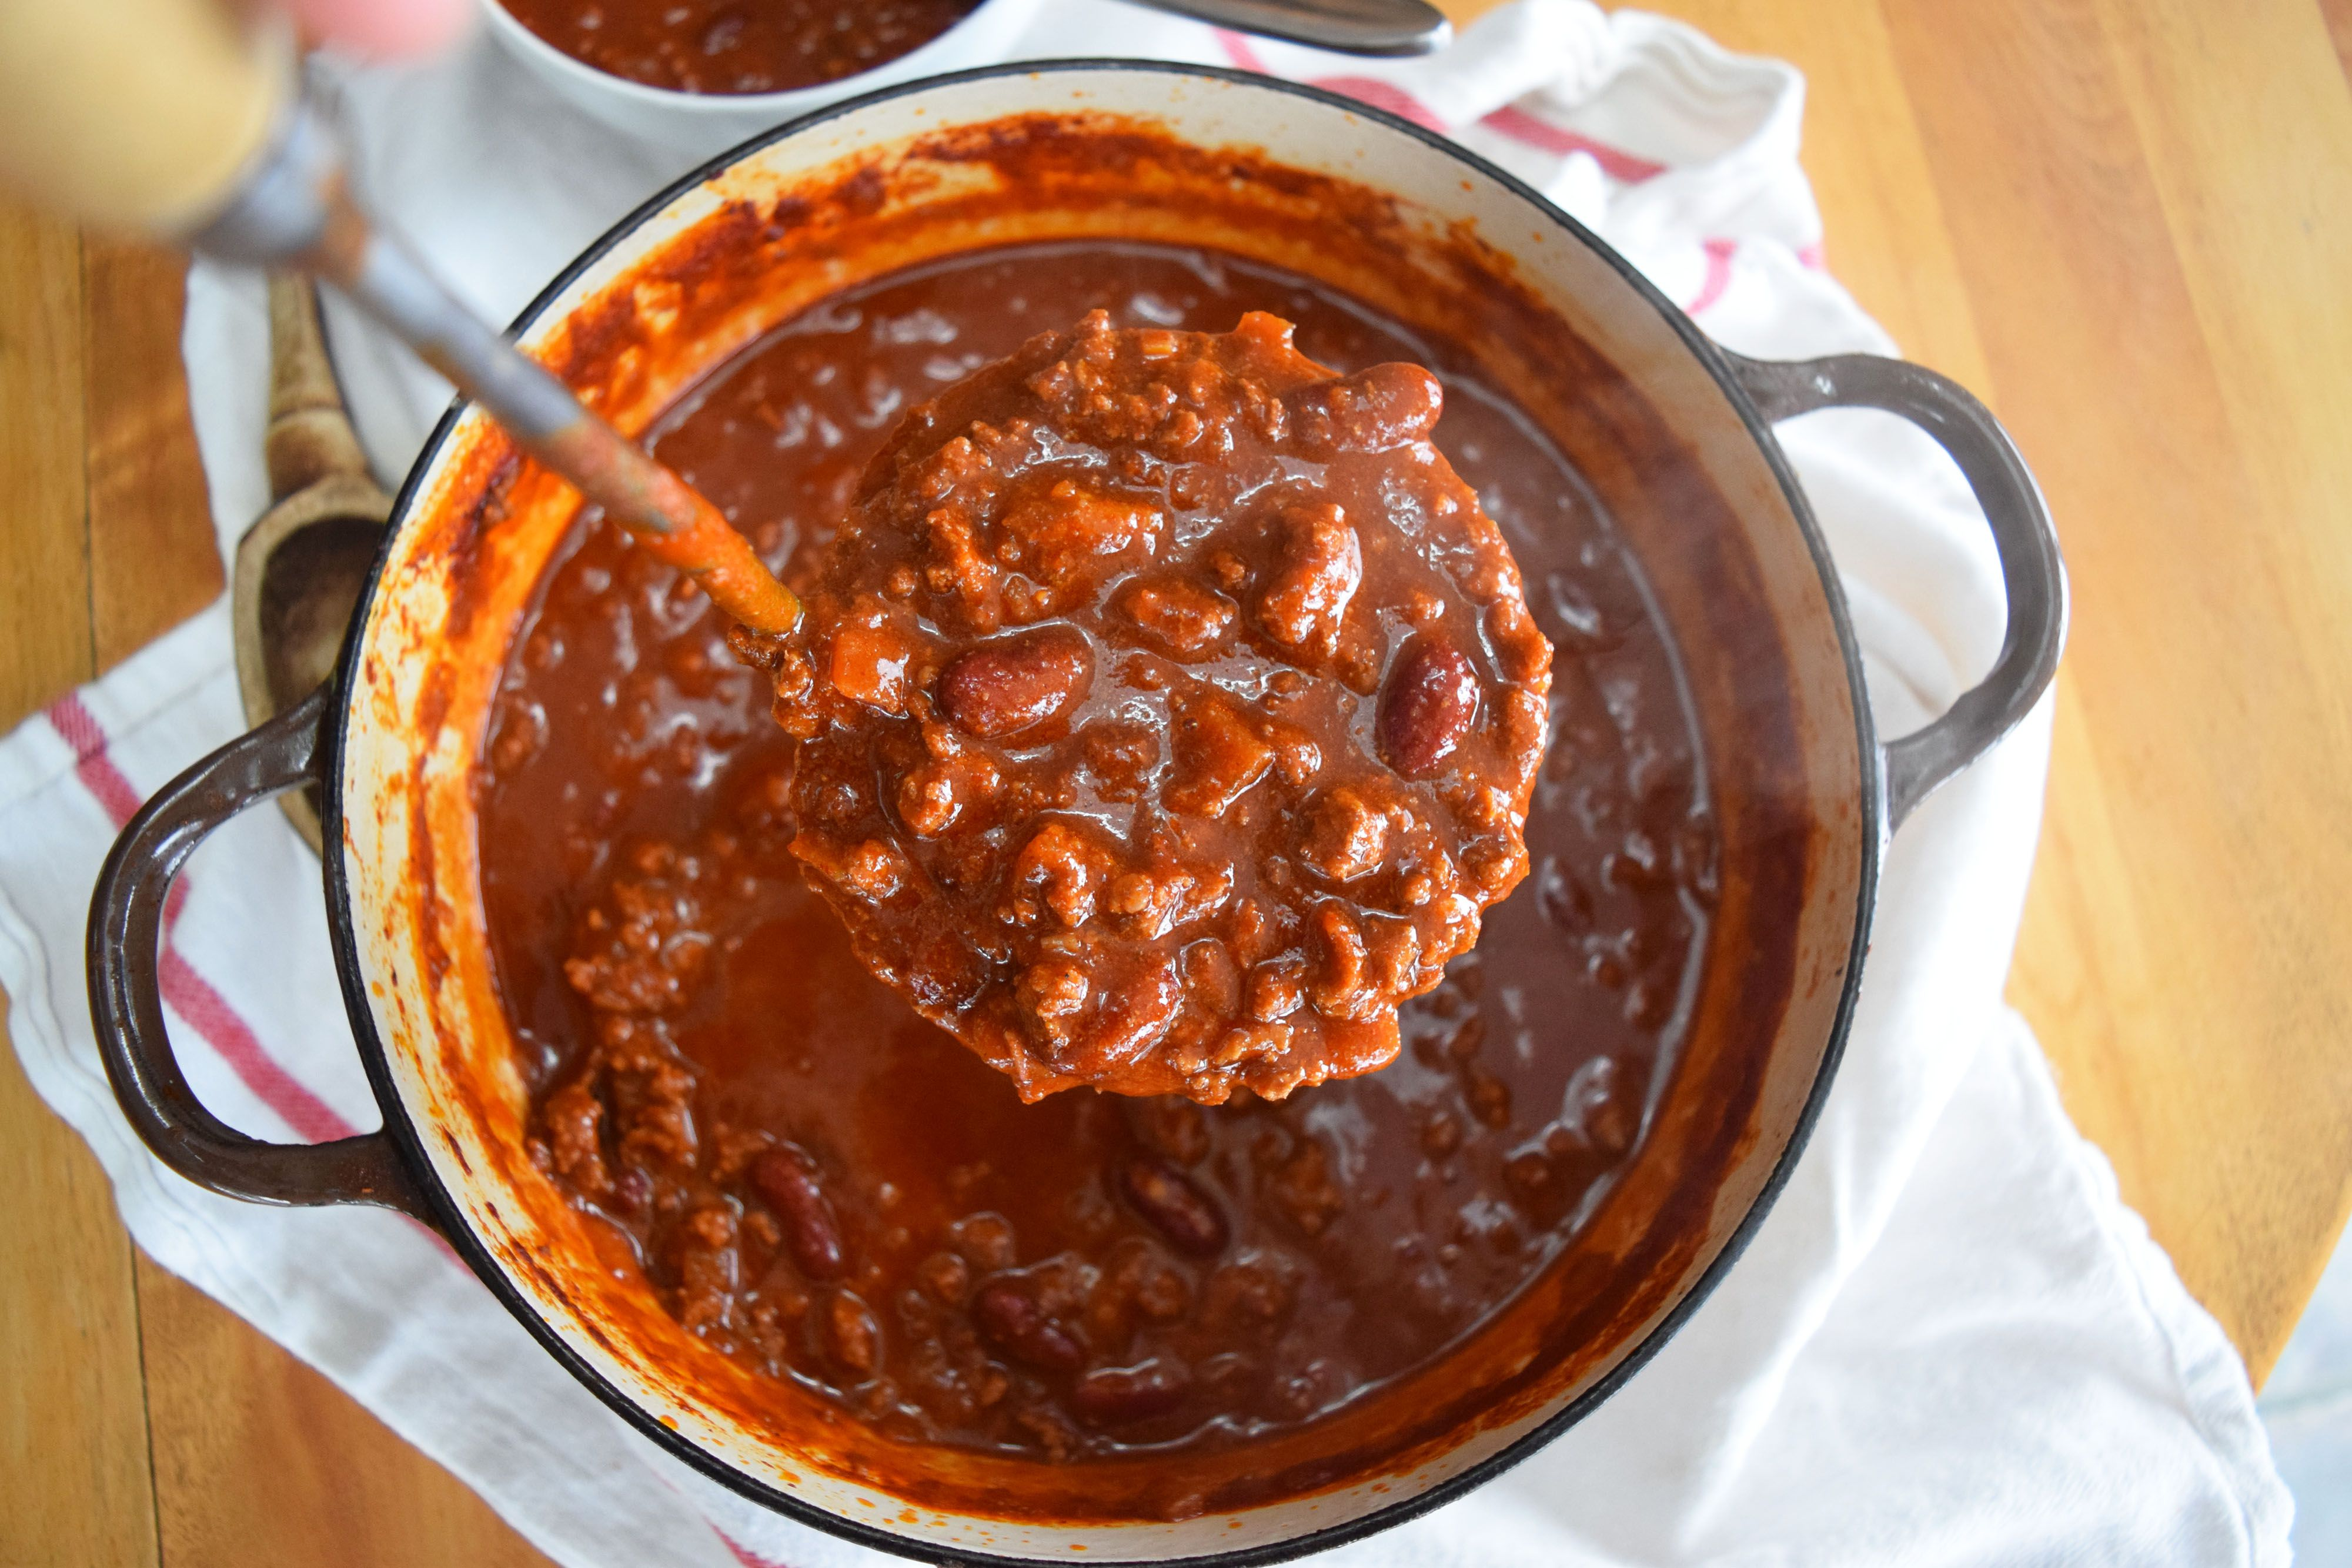 A pot of classic all-beef chili